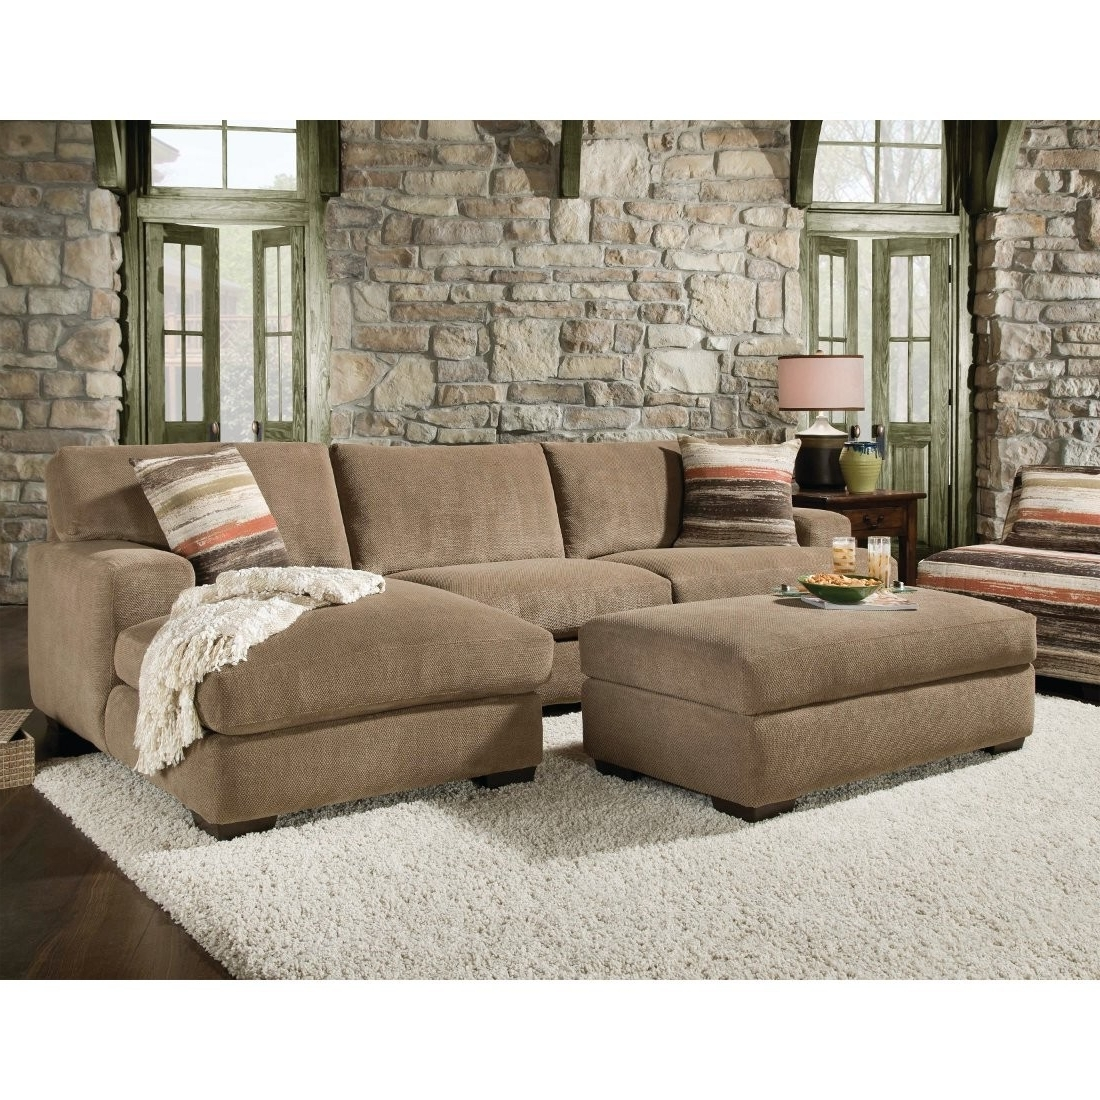 Beautiful Sectional Sofa With Chaise And Ottoman Pictures Inside Widely Used Small Sofas With Chaise (View 12 of 15)